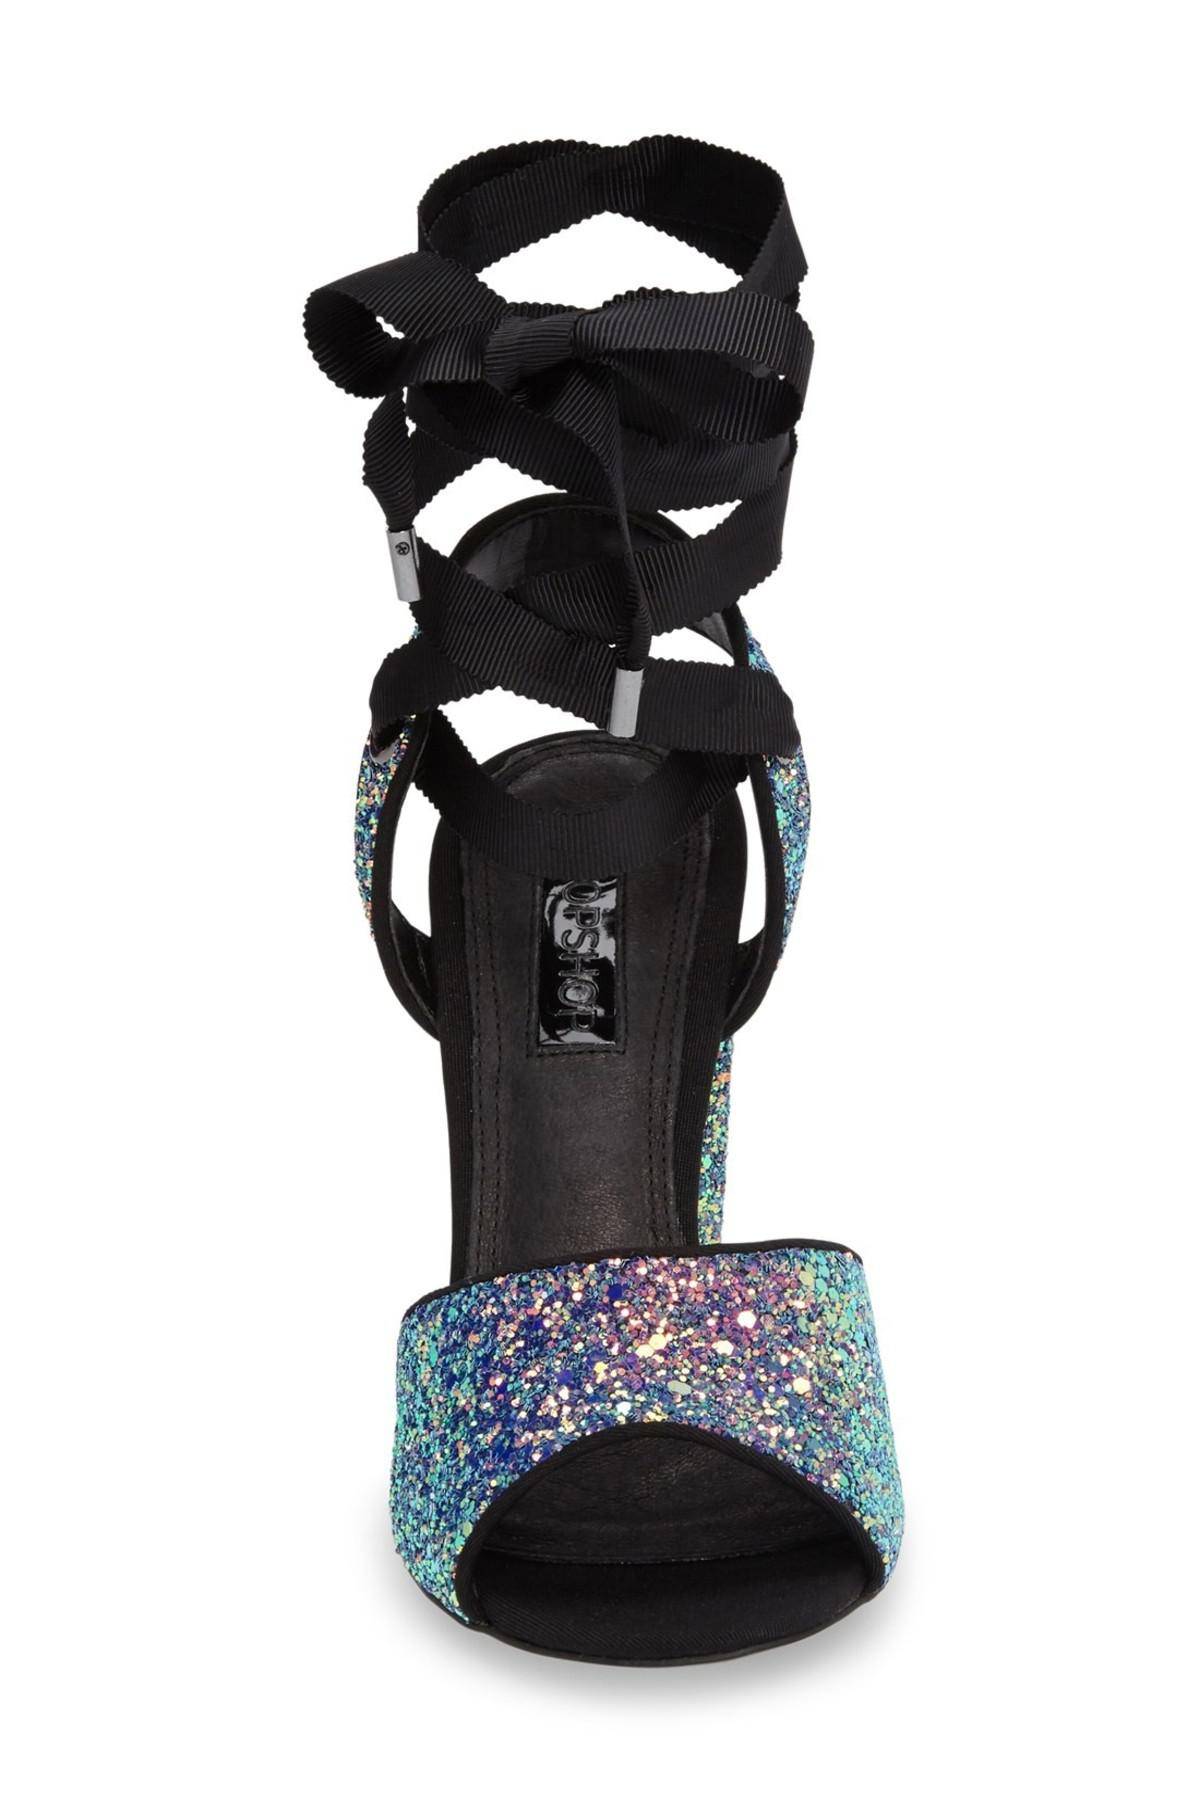 0f5262db333f Lyst - TOPSHOP Royal Glitter Lace-up Sandals in Black